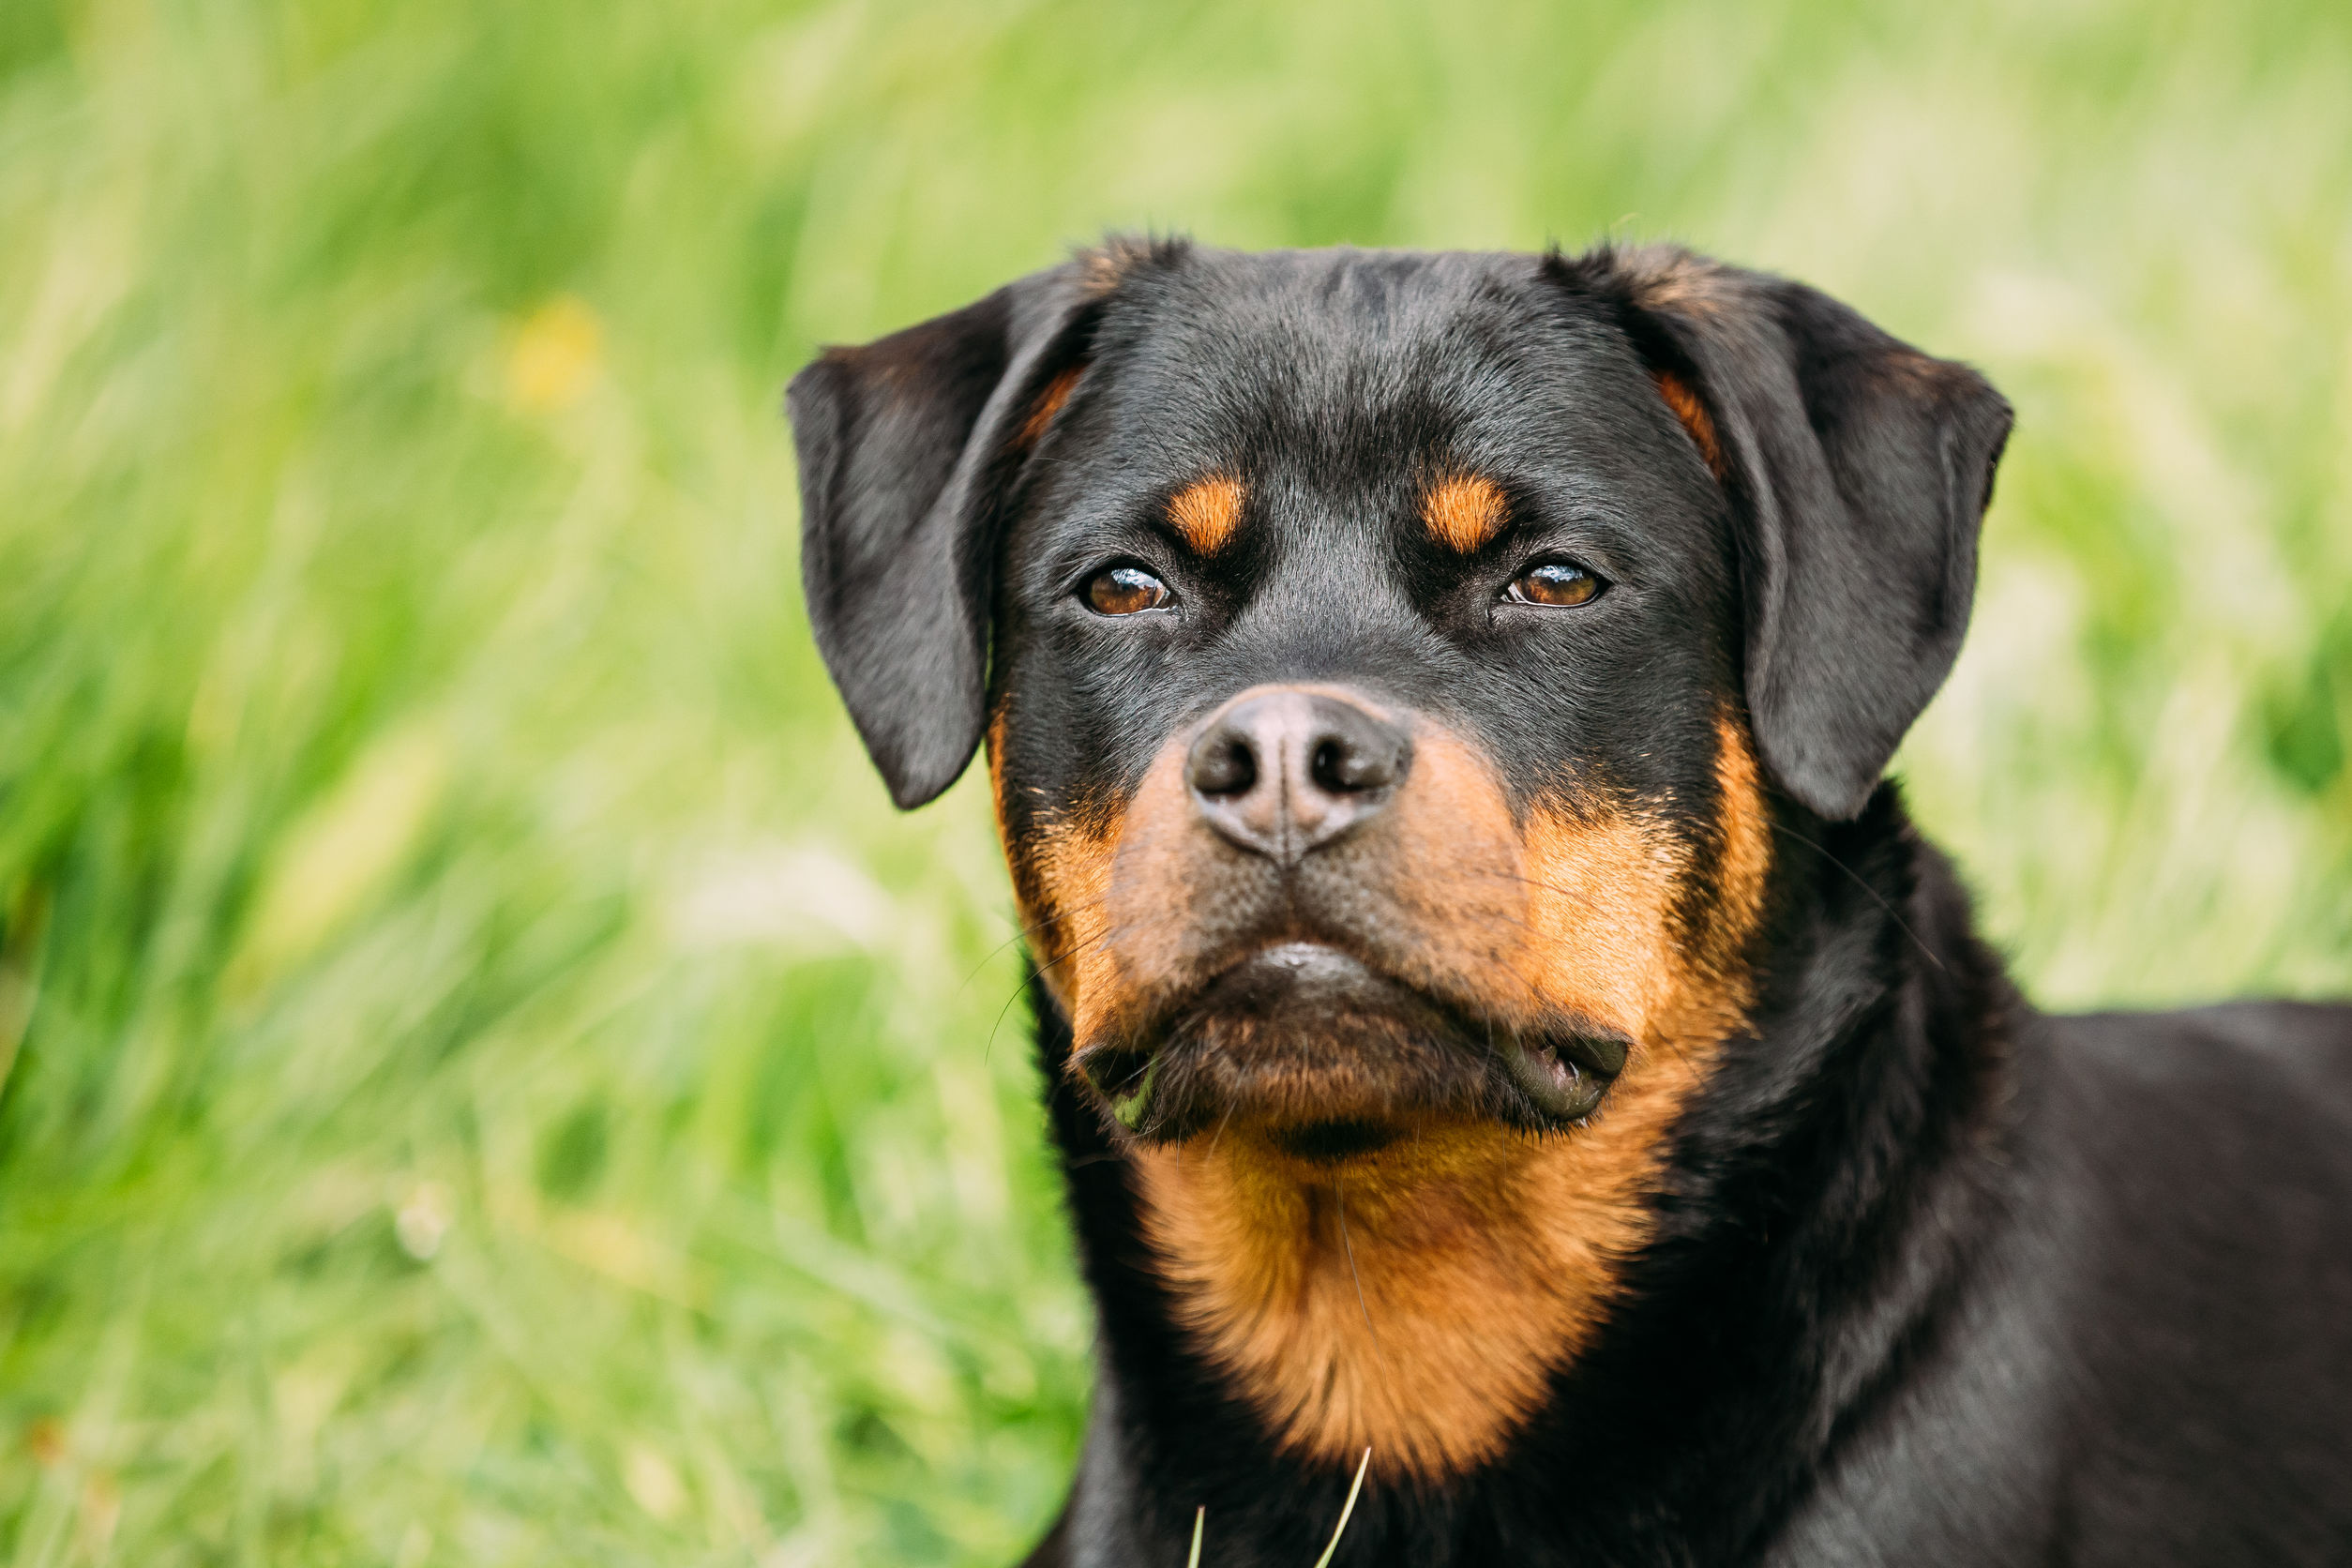 Young Black Rottweiler Metzgerhund Puppy Dog Play In Green Grass